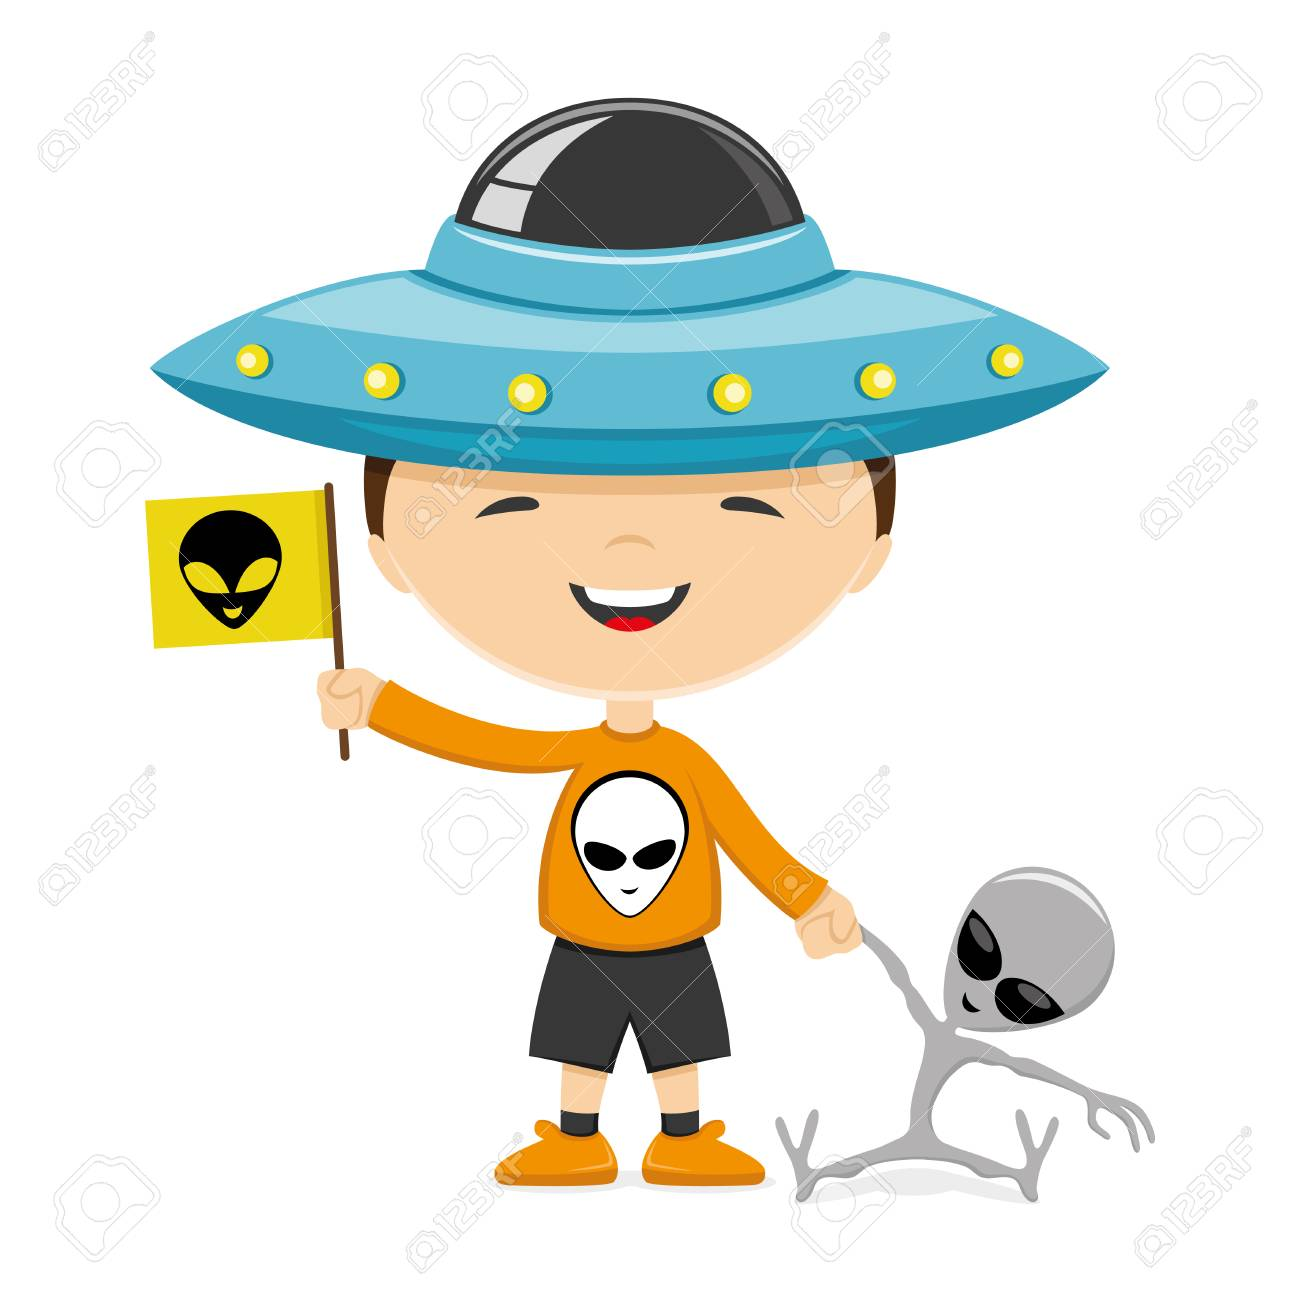 A Child Wearing A Hat In The Form Of A Flying Saucer And With Royalty Free Cliparts Vectors And Stock Illustration Image 50912979